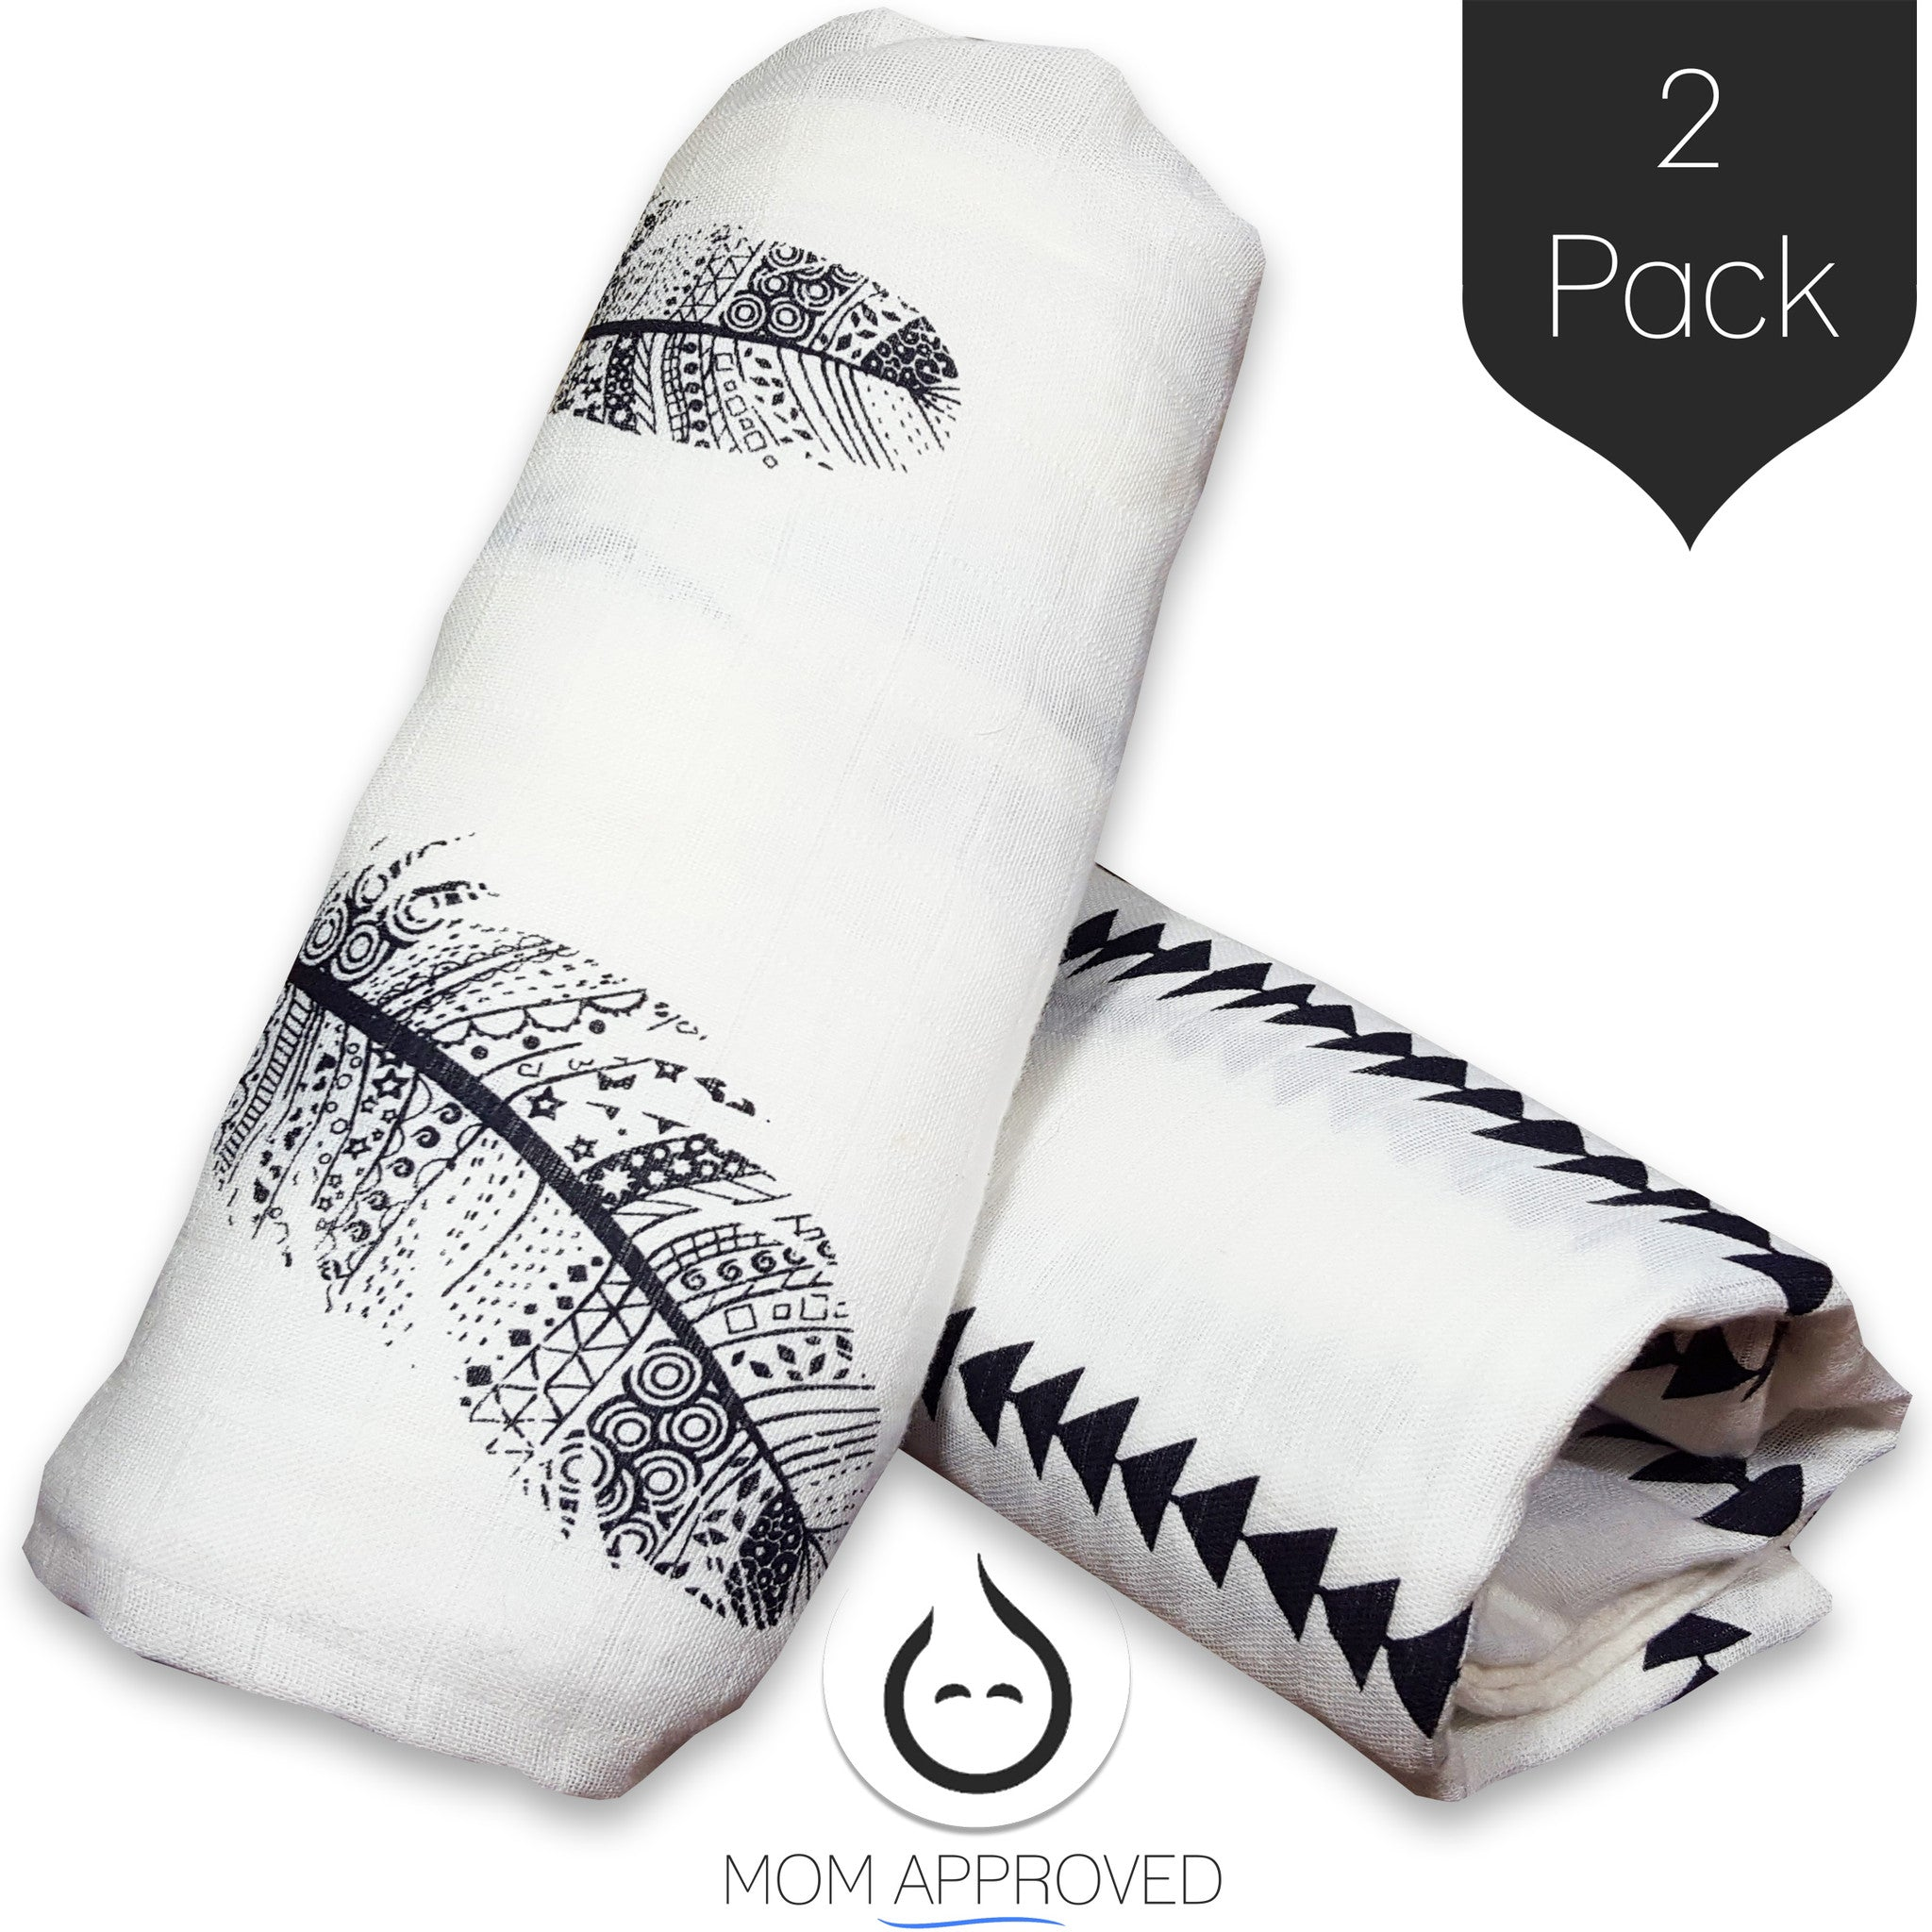 A Closer Look: Our Organic Muslin Swaddles